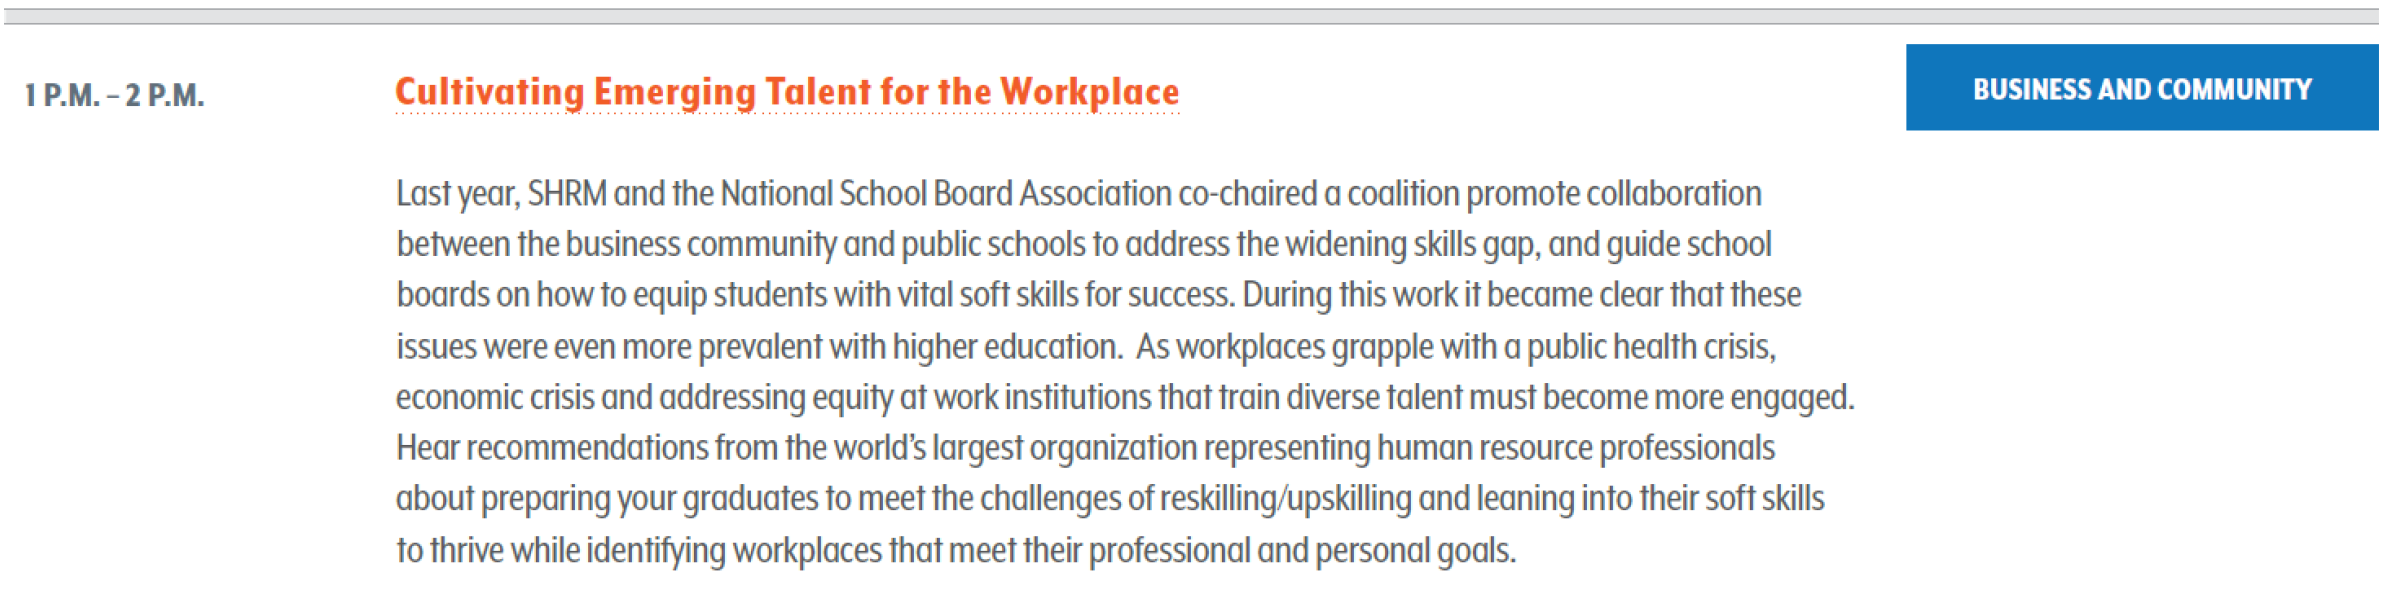 Last year, SHRM and the National School Board Association co-chaired a coalition promote collaboration between the business community and public schools to address the widening skills gap, and guide school boards on how to equip students with vital soft skills for success. During this work it became clear that these issues were even more prevalent with higher education. As workplaces grapple with a public health crisis, economic crisis and addressing equity at work institutions that train diverse talent must become more engaged. Hear recommendations from the world's largest organization representing human resource professionals about preparing your graduates to meet the challenges of reskilling/upskilling and leaning into their soft skills to thrive while identifying workplaces that meet their professional and personal goals.